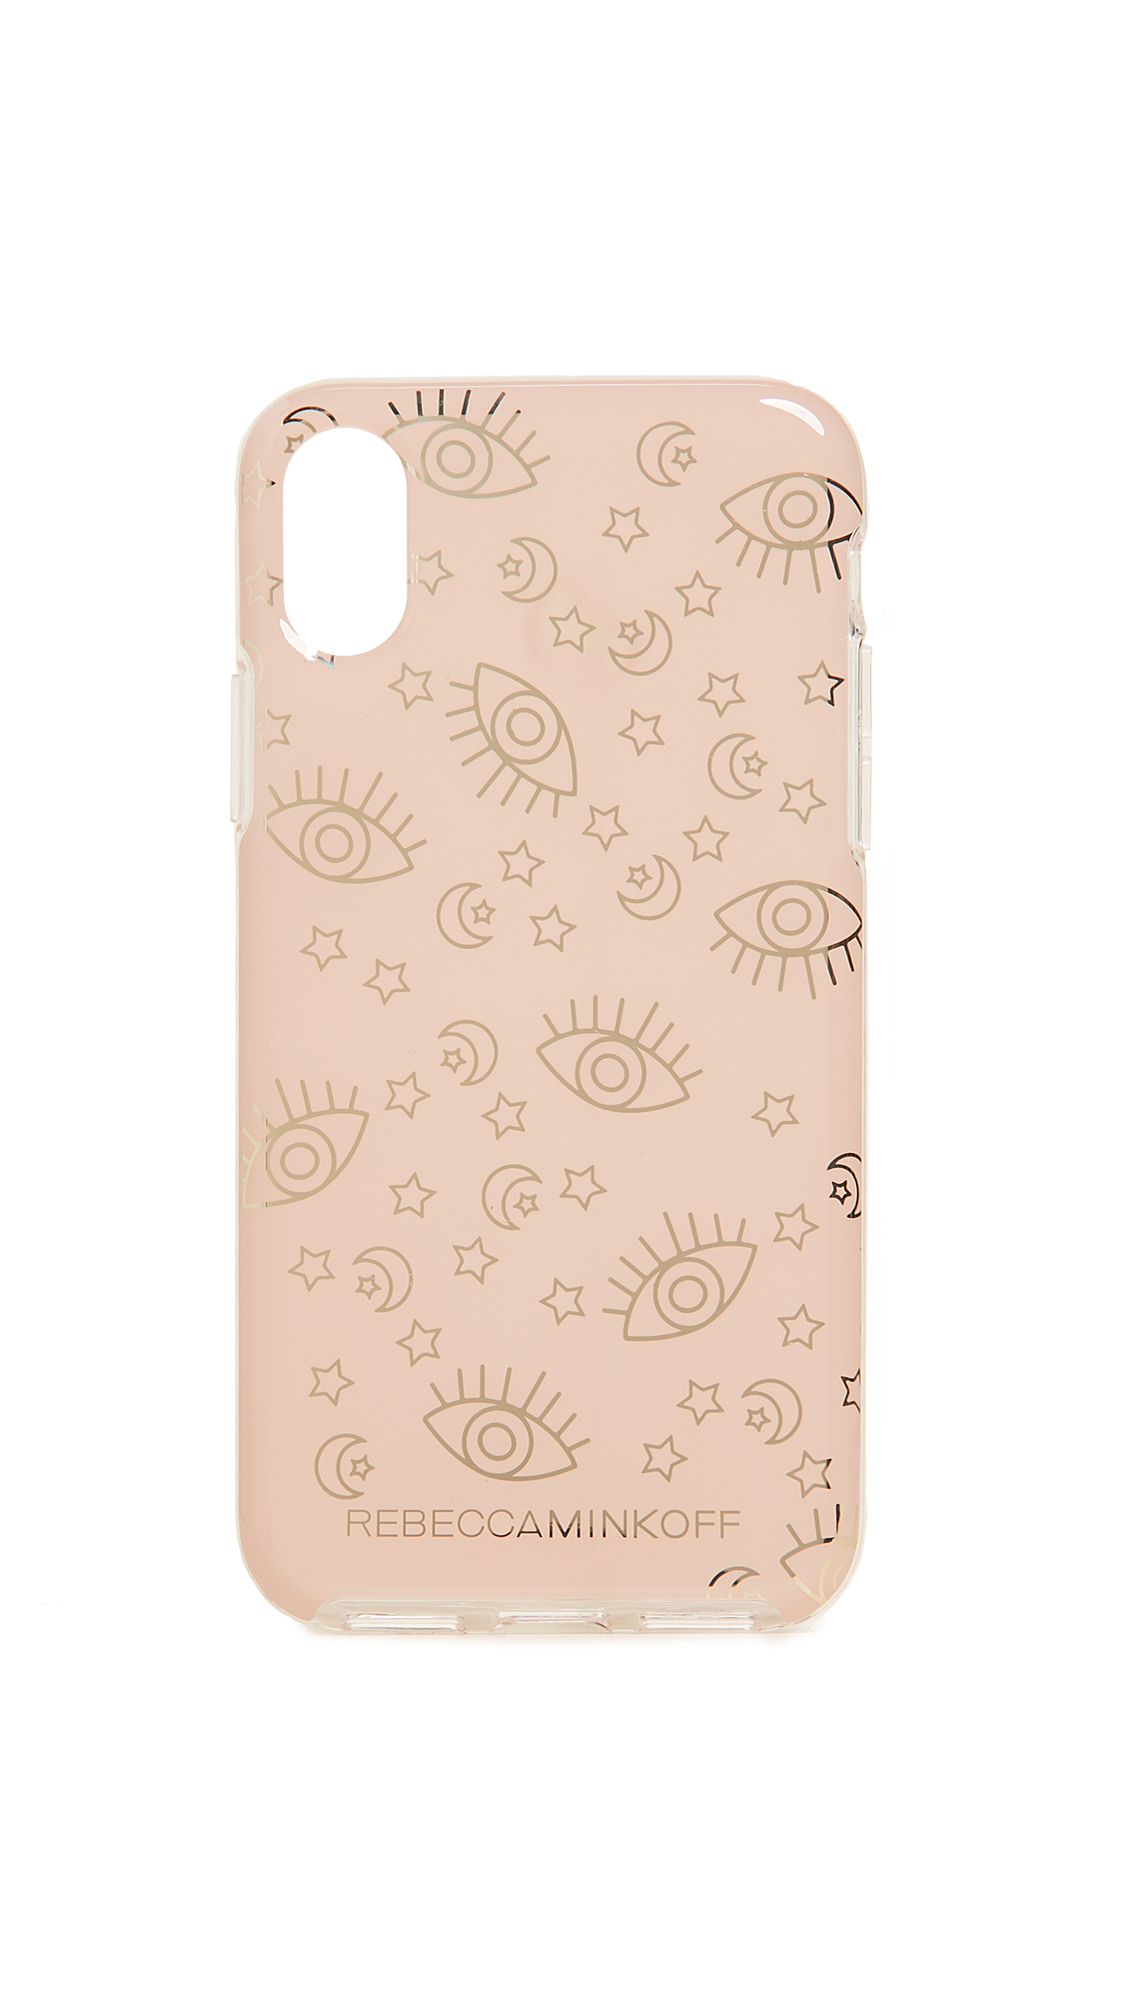 Rebecca Minkoff Metallic Galaxy Icons iPhone X Case - Rose Gold/Gold